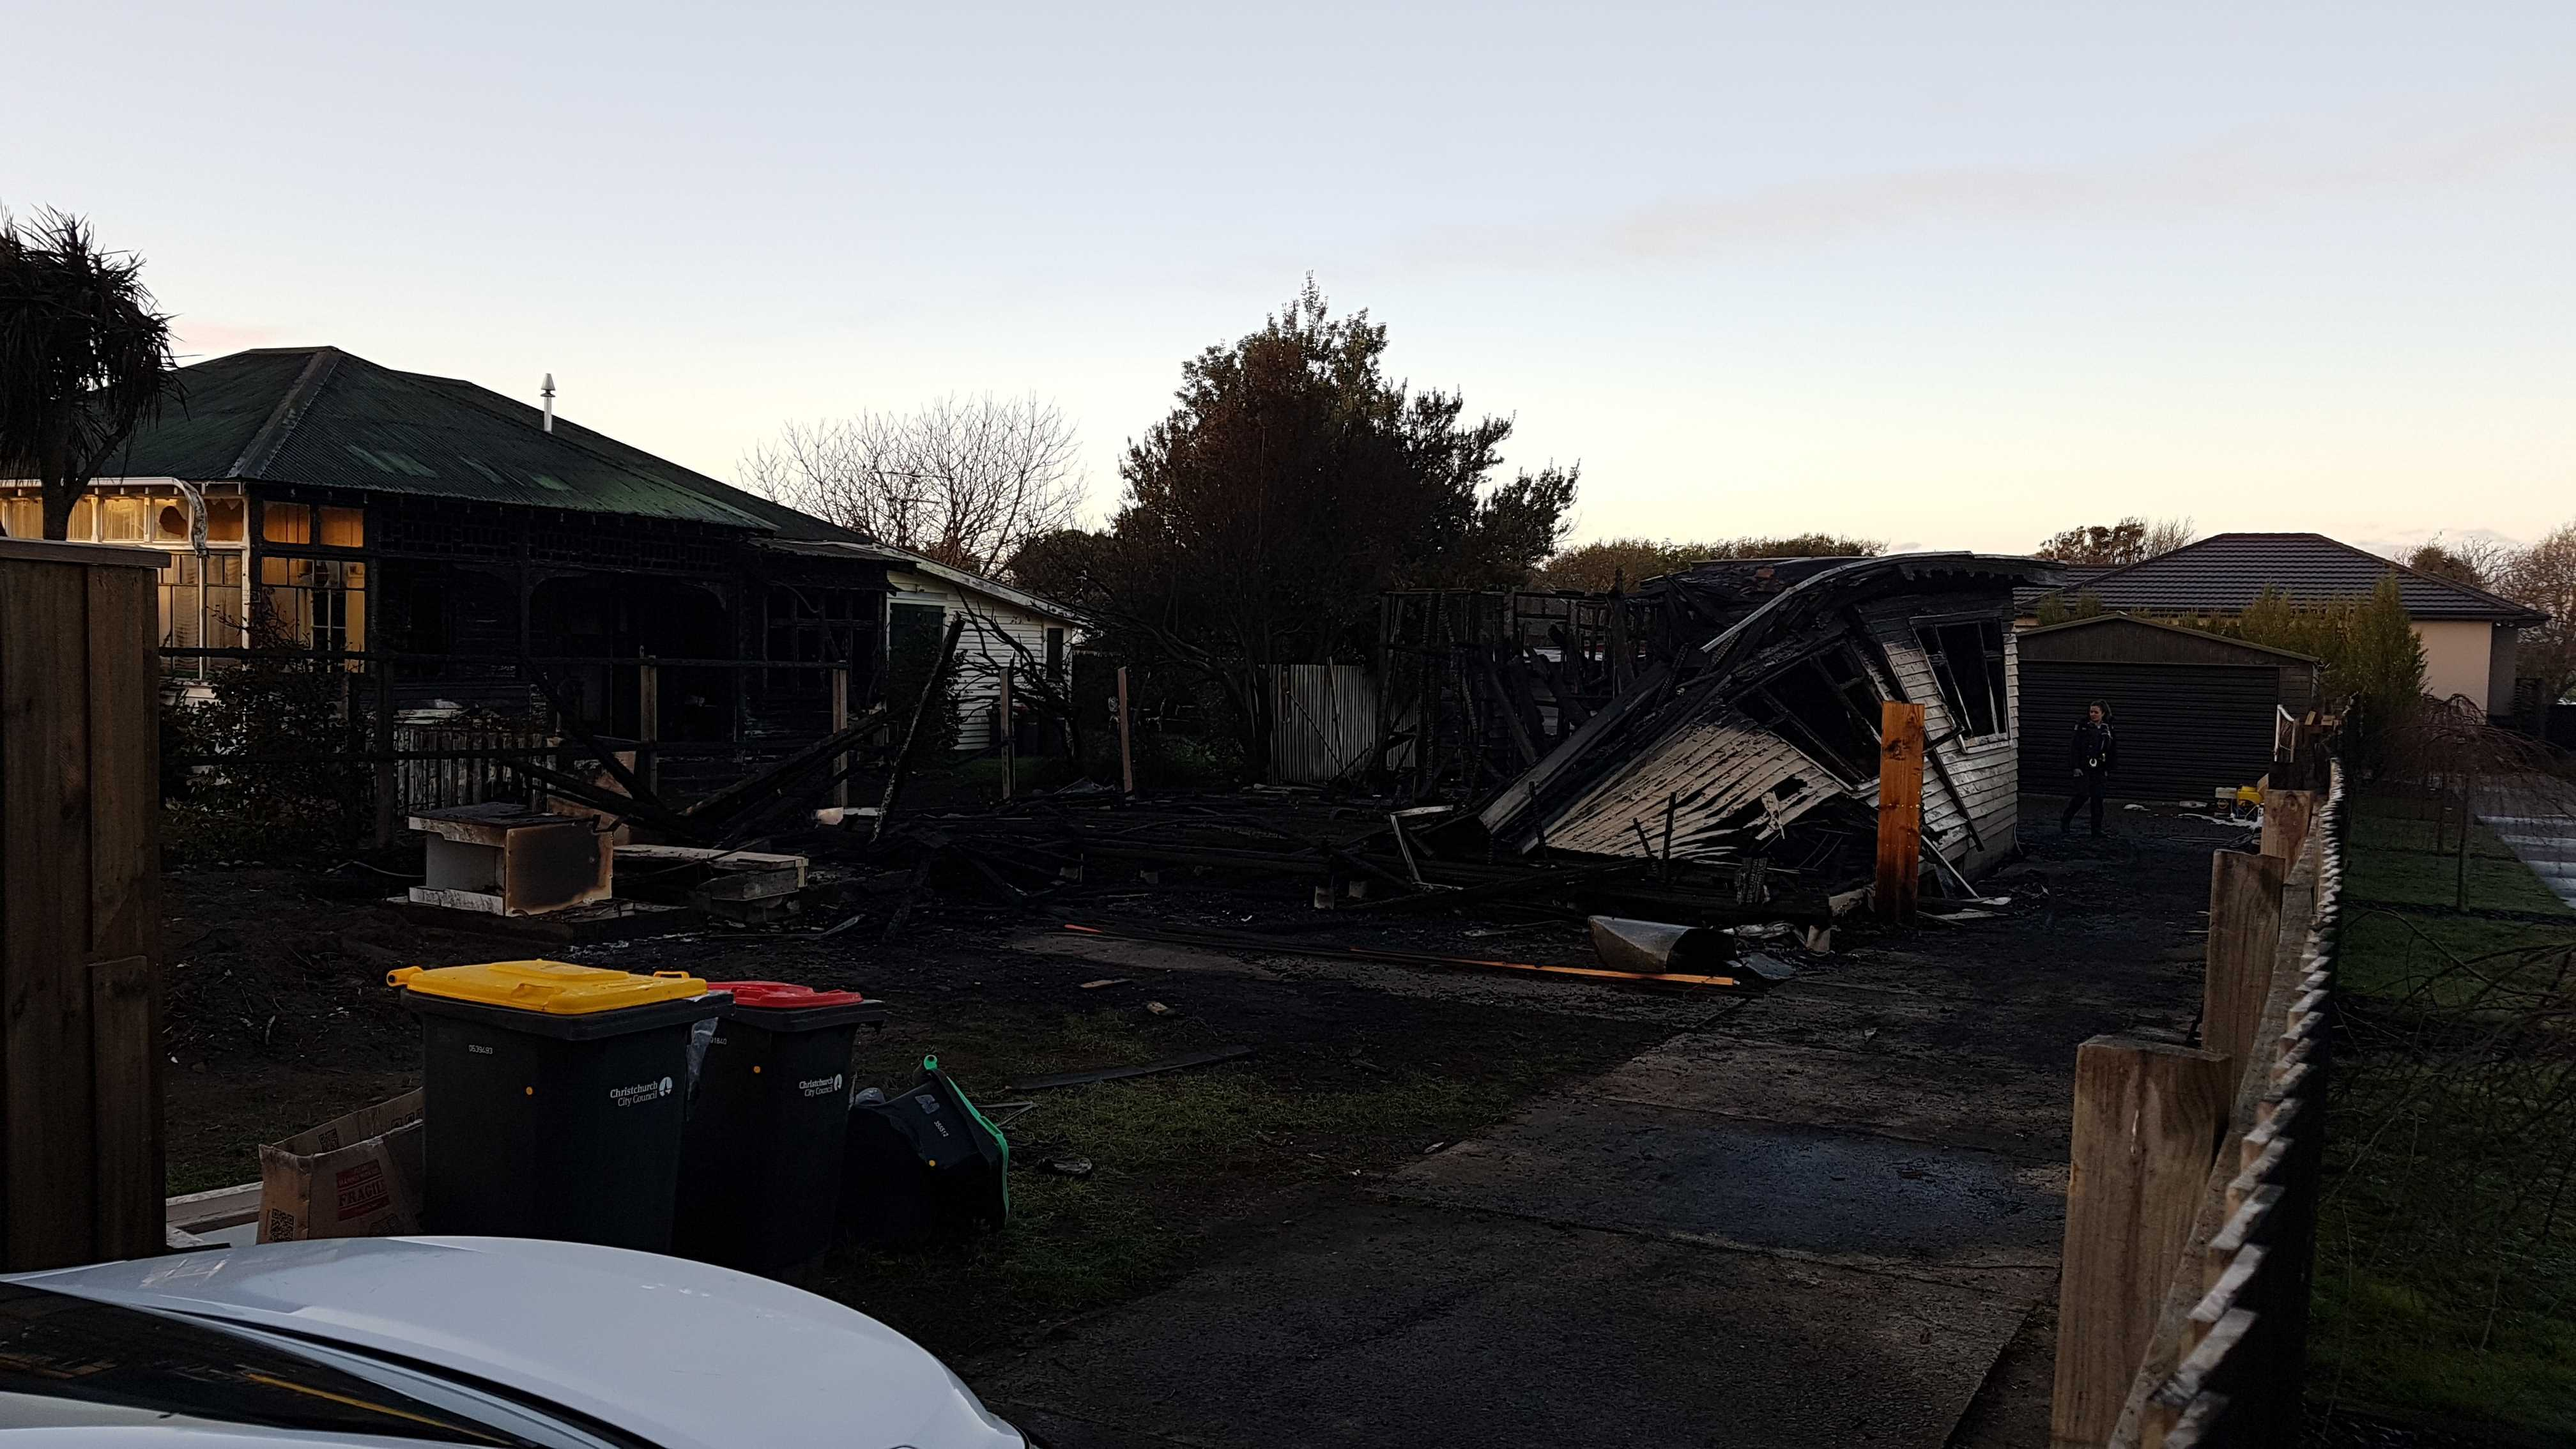 Emergency services were called to the blaze on Rawson St in New Brighton about 1.45am.